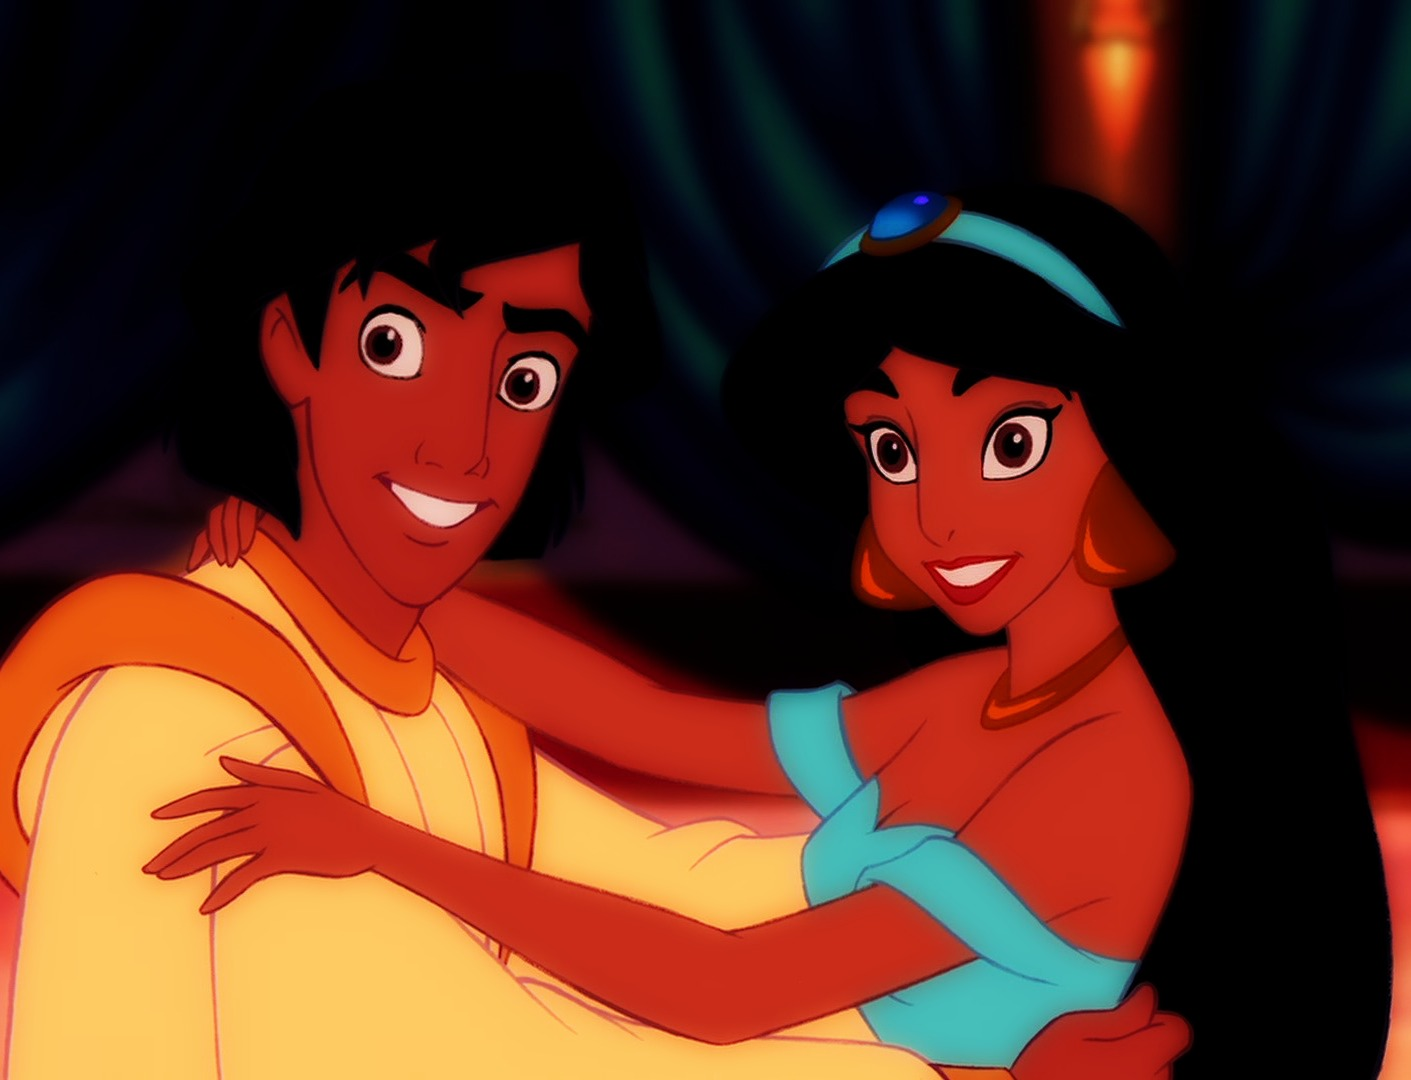 disney aladdin jasmine - photo #39